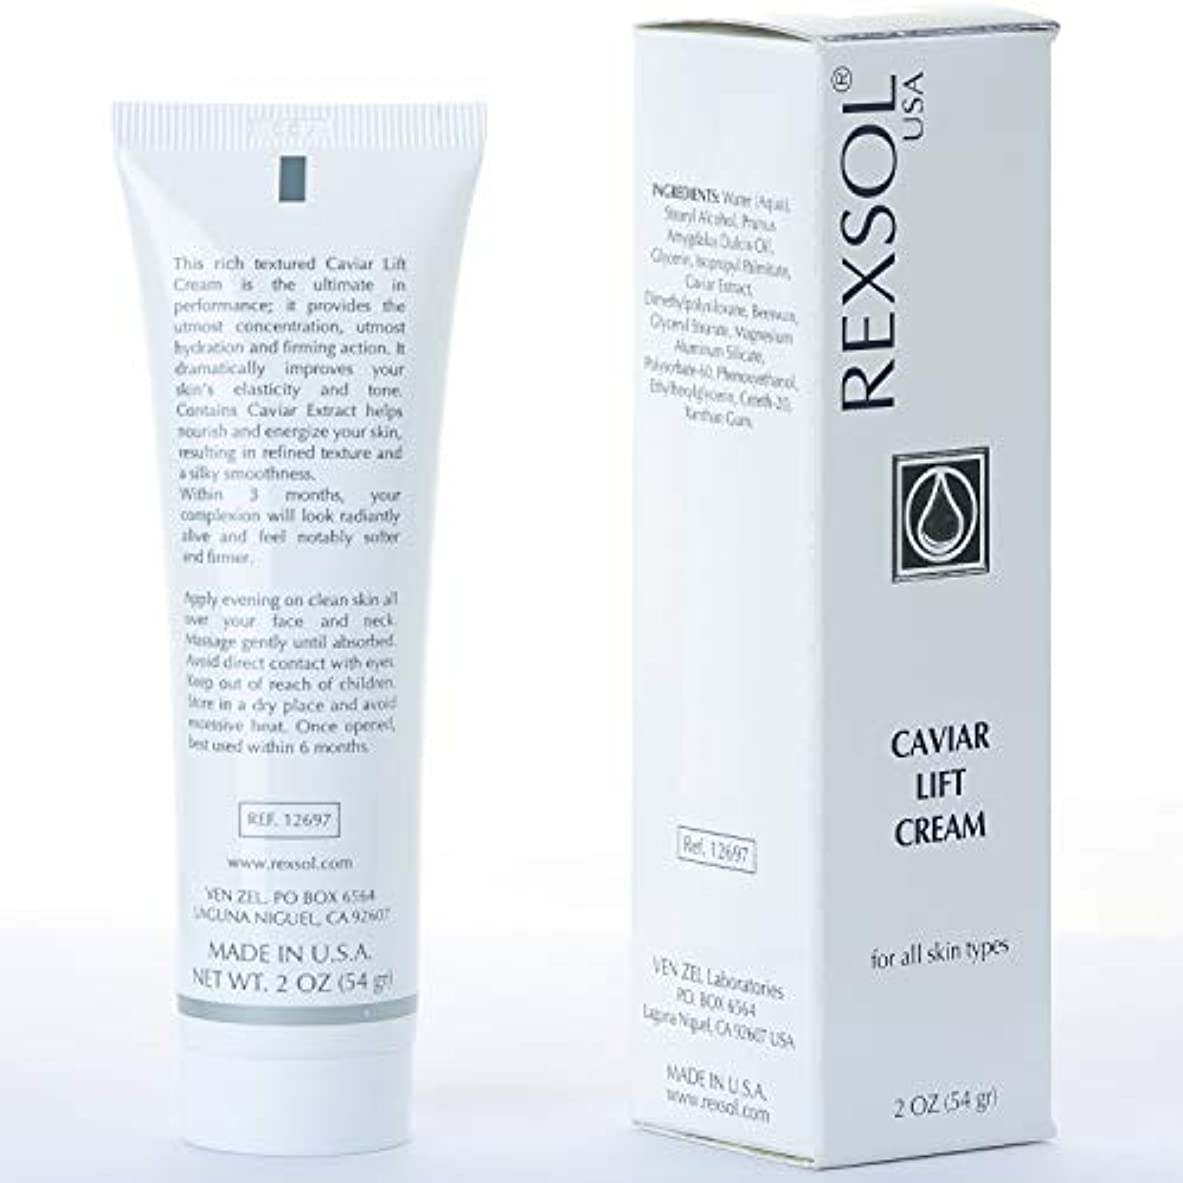 REXSOL Caviar Lift Cream | Contains Prunus Amygdalus Dulcis Oil, Glycerin, Beeswax & Caviar Extract | あなたの肌の弾力...